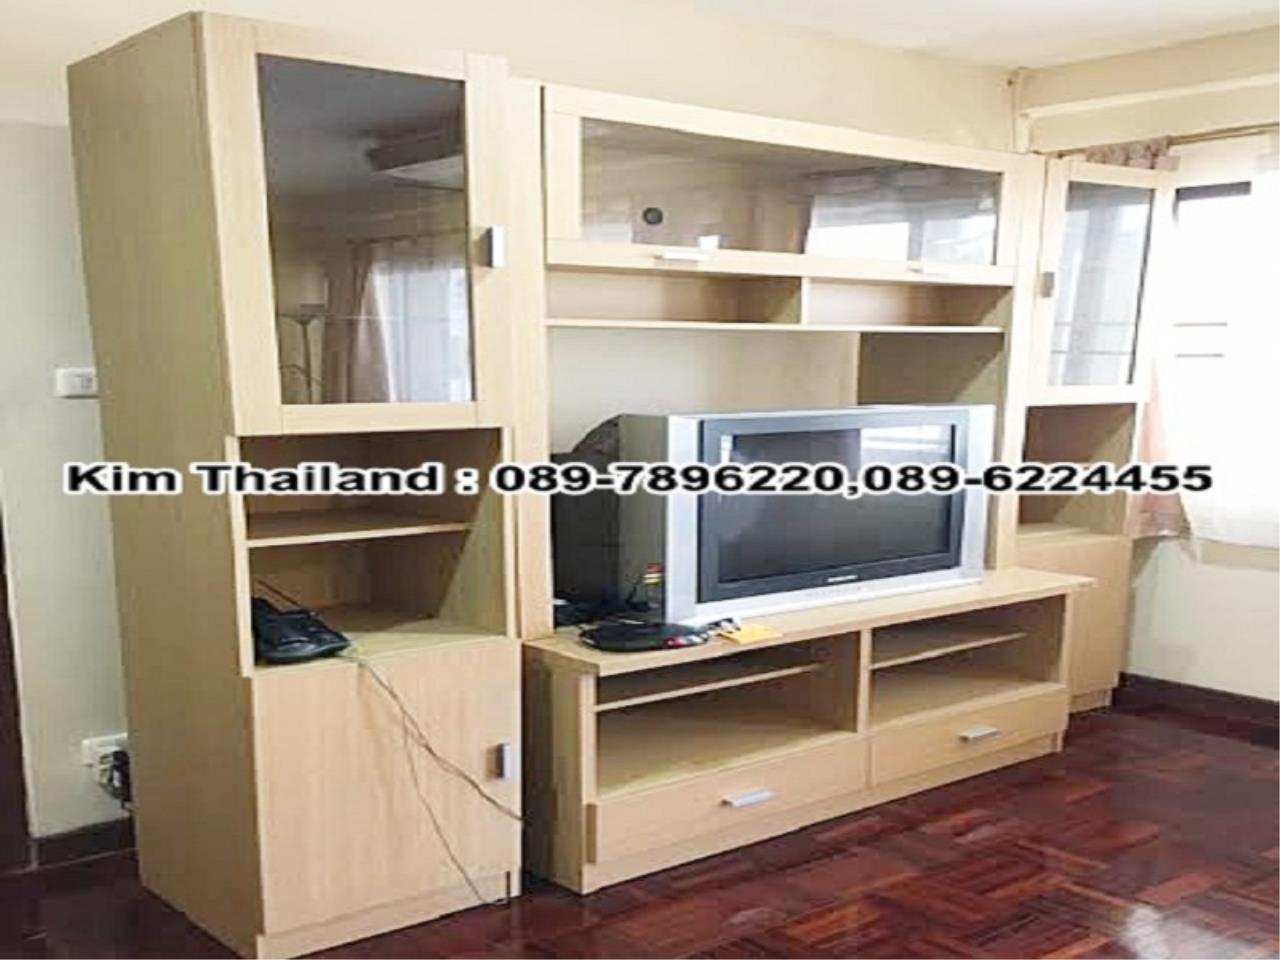 BKKcondorental Agency's For rent, Condo Saranjai Mansion. Area 63 sq.m. 1 bedroom. Rent 20,000baht/month 5